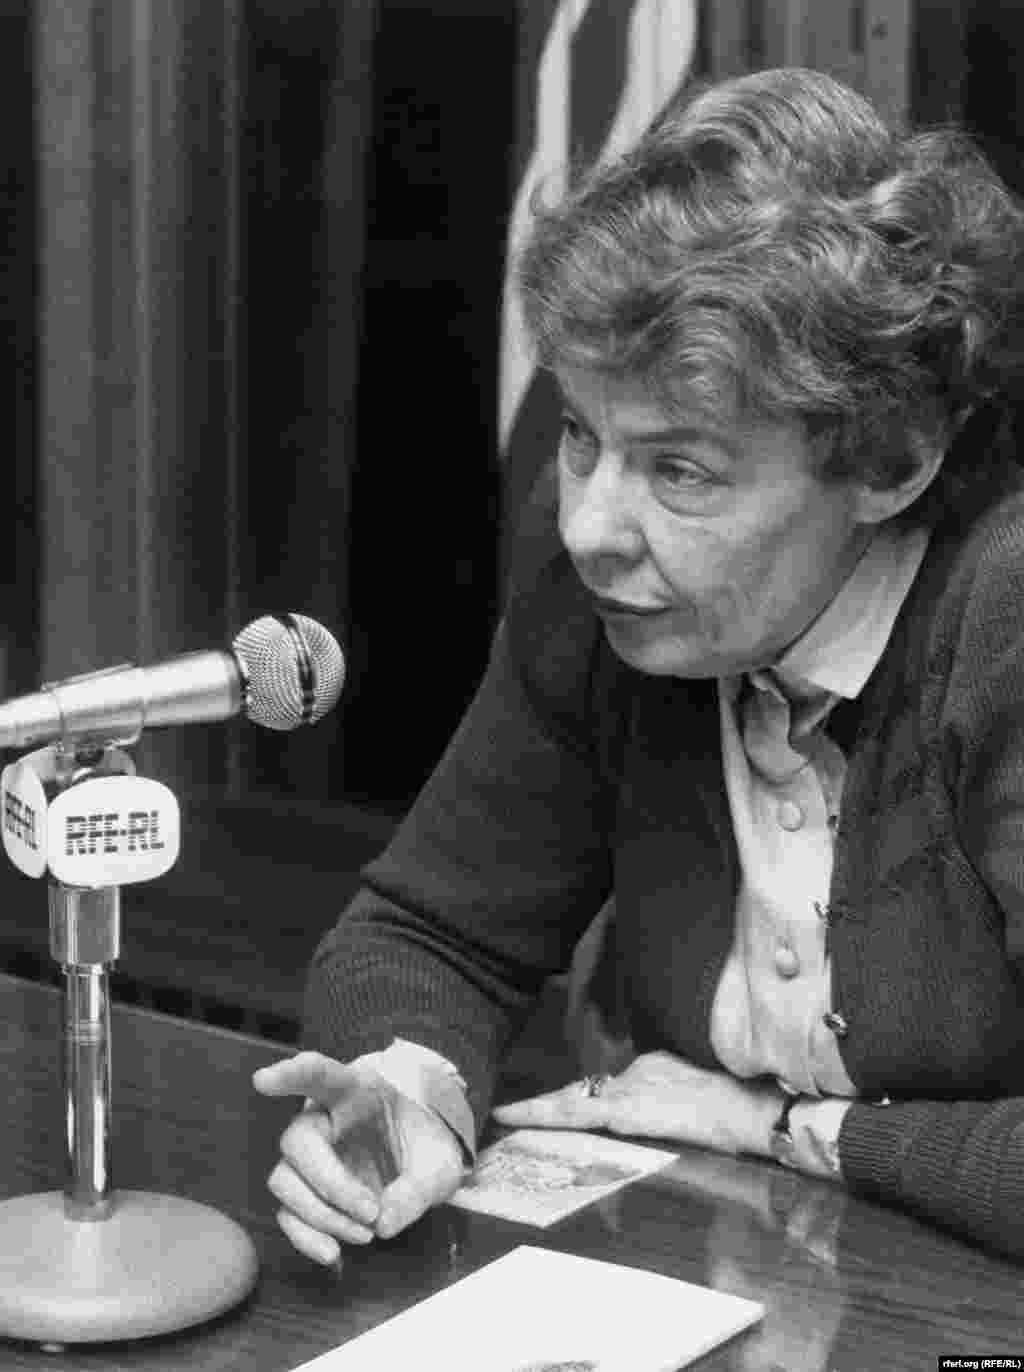 Ronald Regan's foreign policy adviser and ardent anticommunist Jeane Kirkpatrick sits down with RFE in 1980. - Ronald Regan's foreign policy adviser and ardent anticommunist Jeane Kirkpatrick sits down with RFE in 1980.